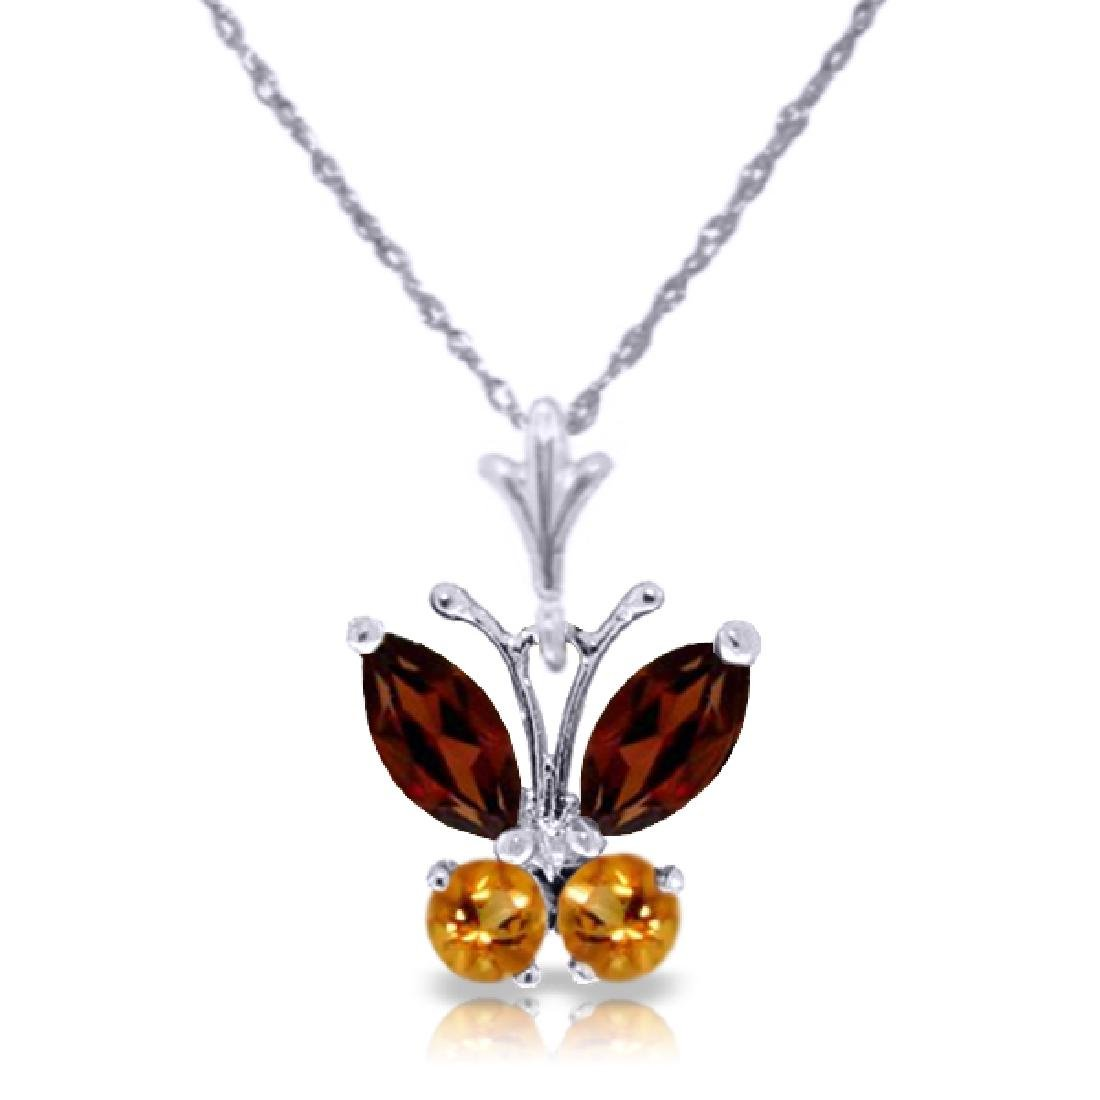 Genuine 0.60 ctw Garnet & Citrine Necklace Jewelry 14KT